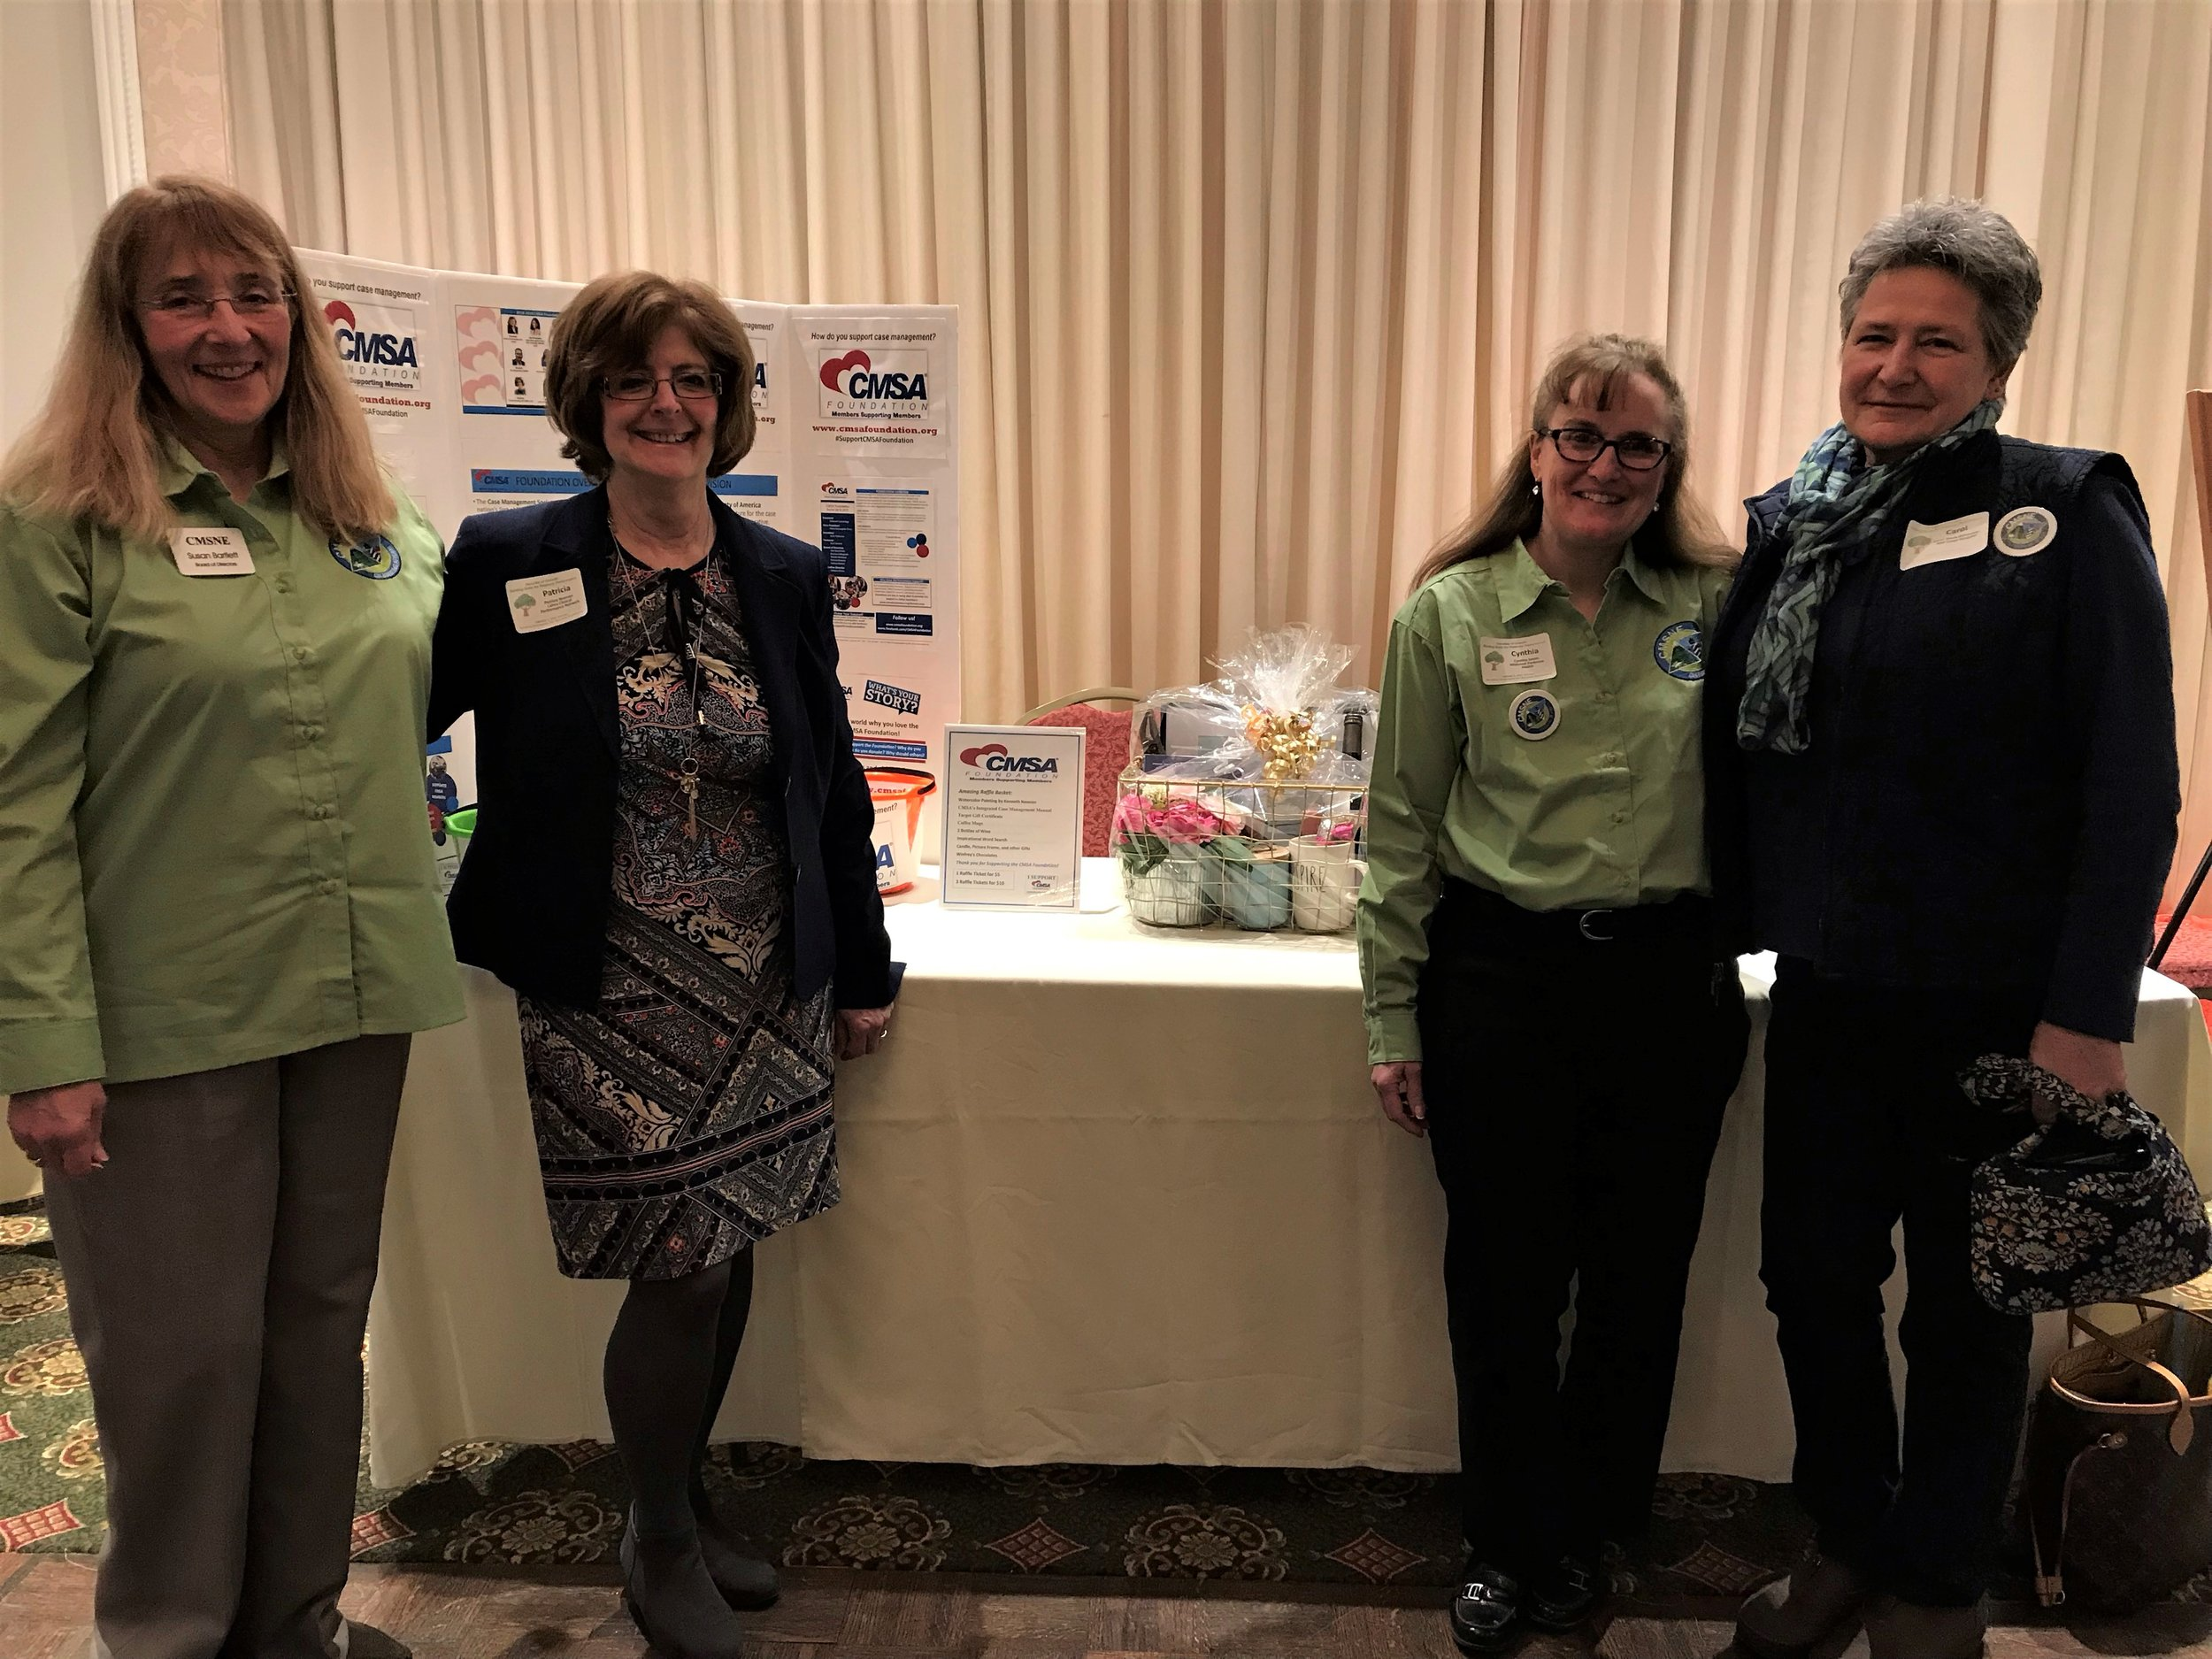 Case Management Society of New England Conference, March 2019  Foundation Booth and Raffle - Raised $450 to donate to the Foundation.